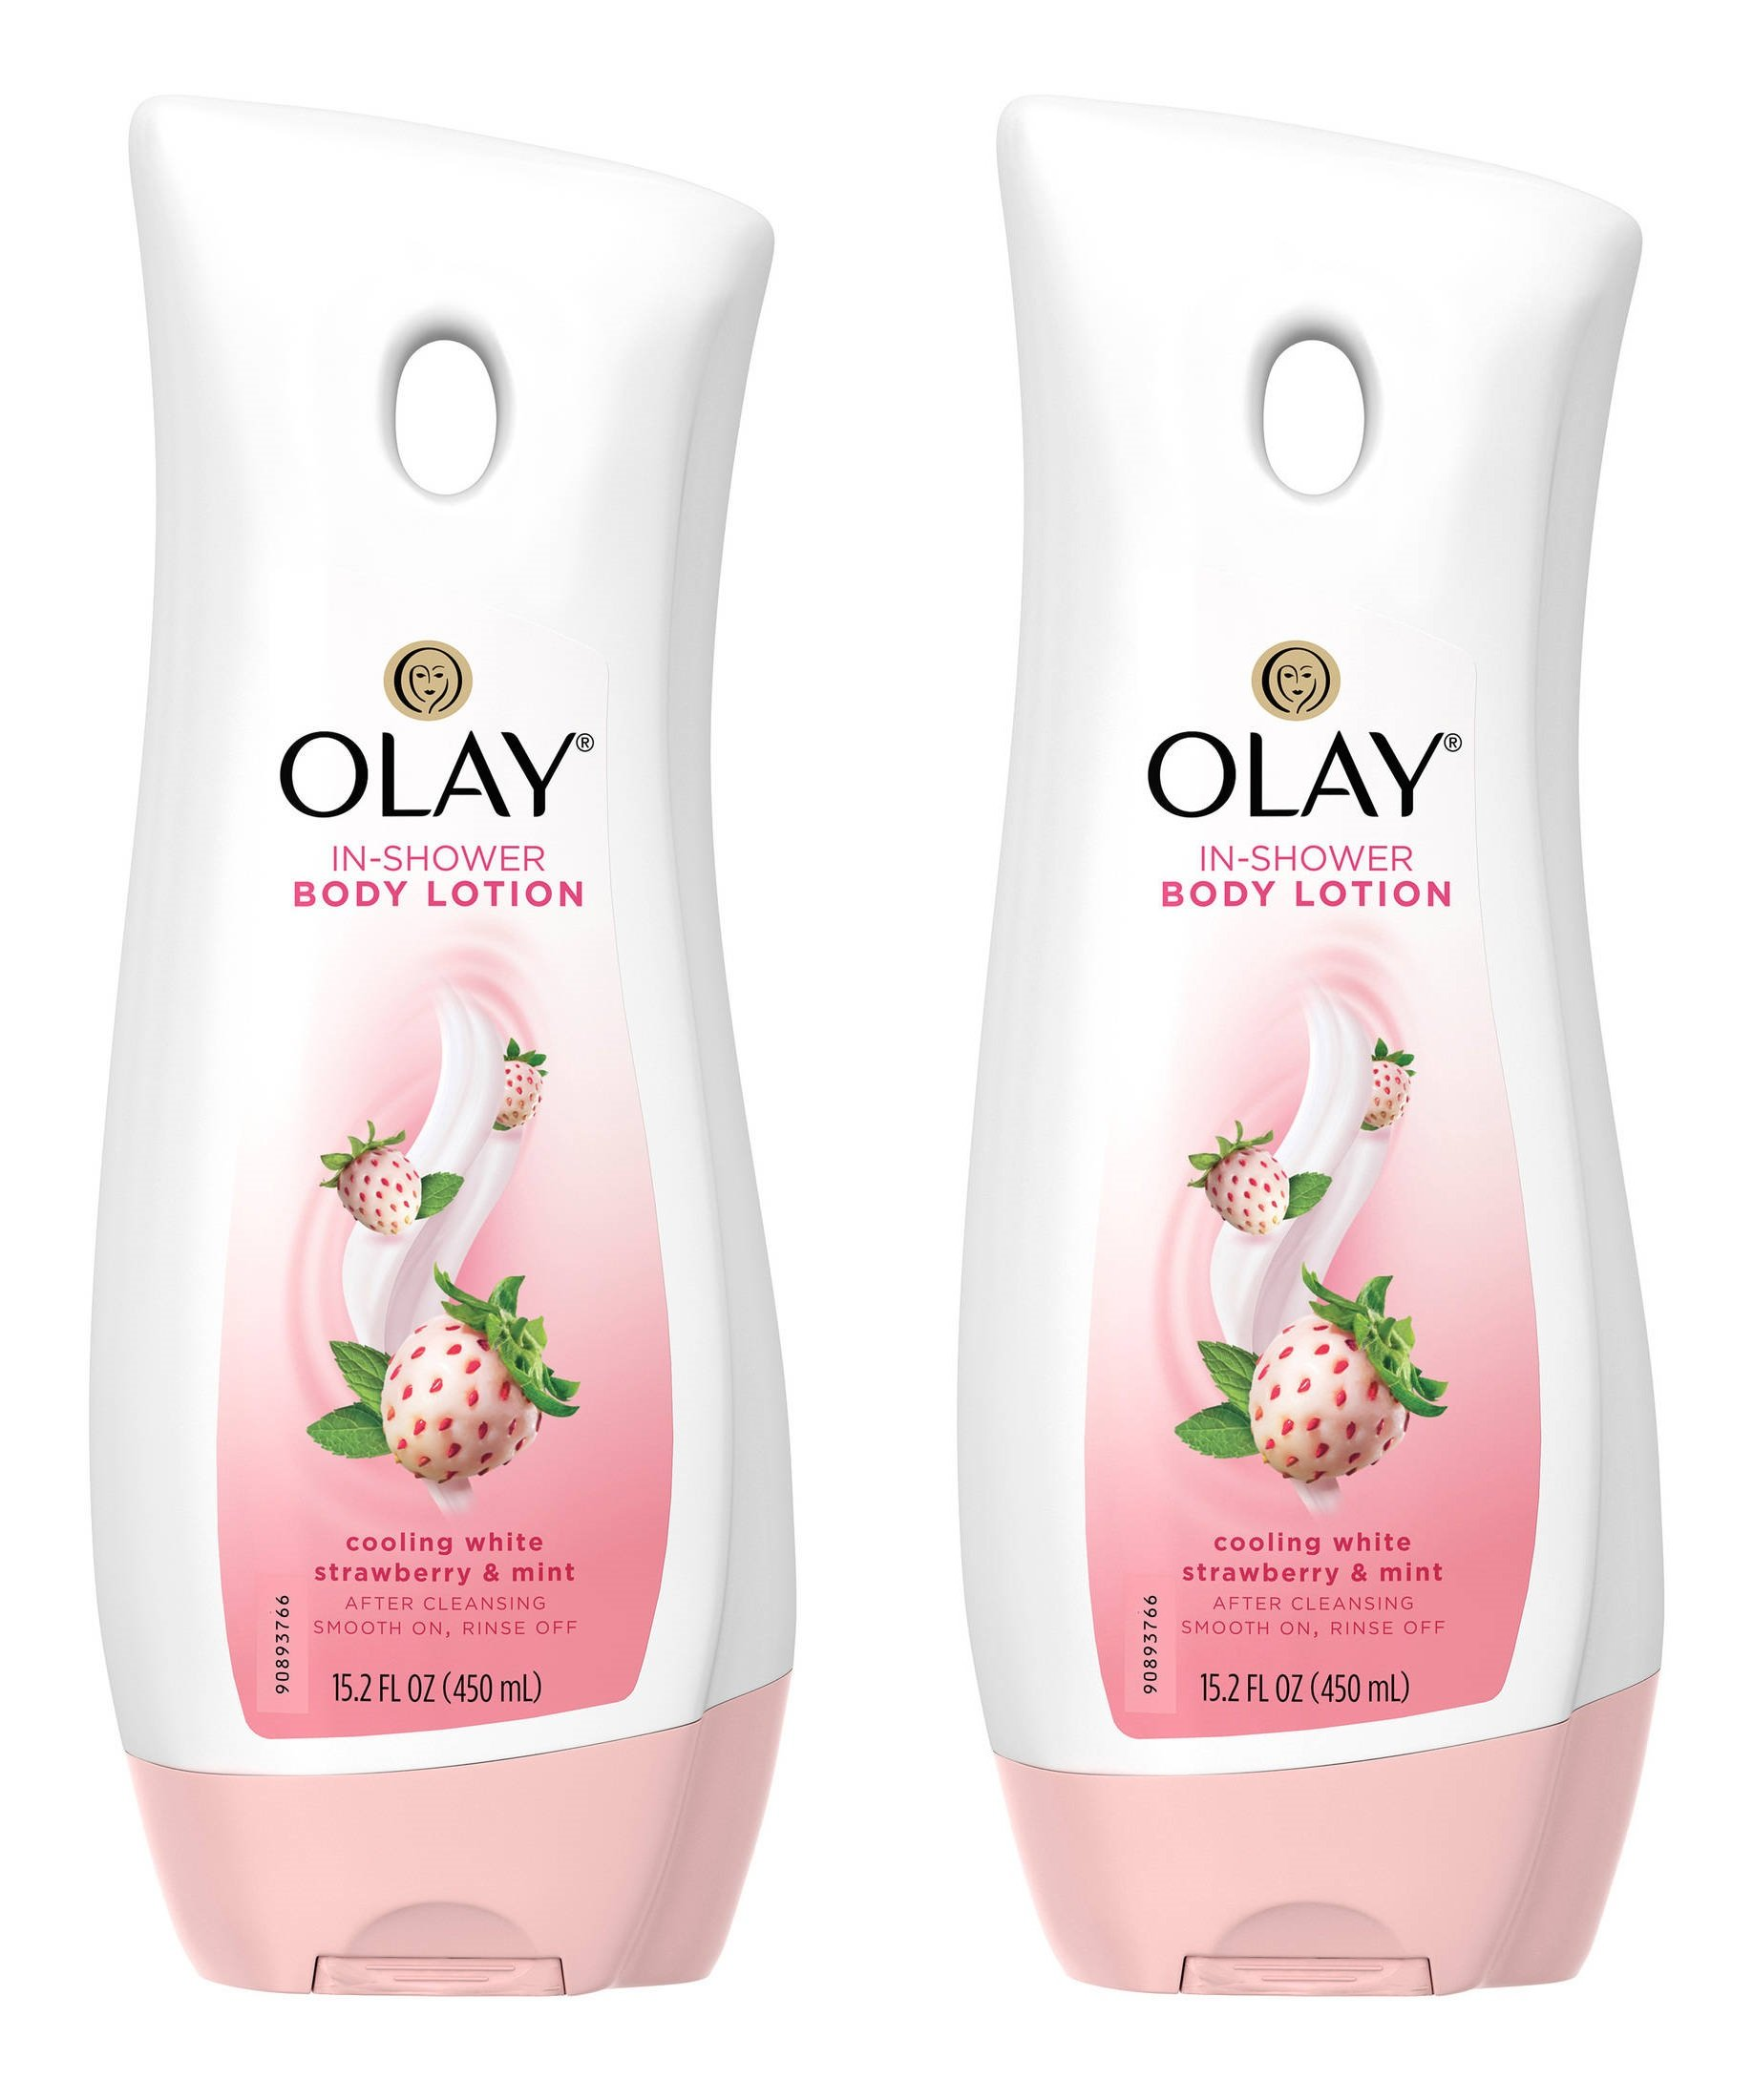 Olay In-Shower Body Lotion - Cooling White Strawberry & Mint - Net Wt. 15.2 FL OZ (450 mL) Per Bottle - Pack of 2 Bottles by Olay